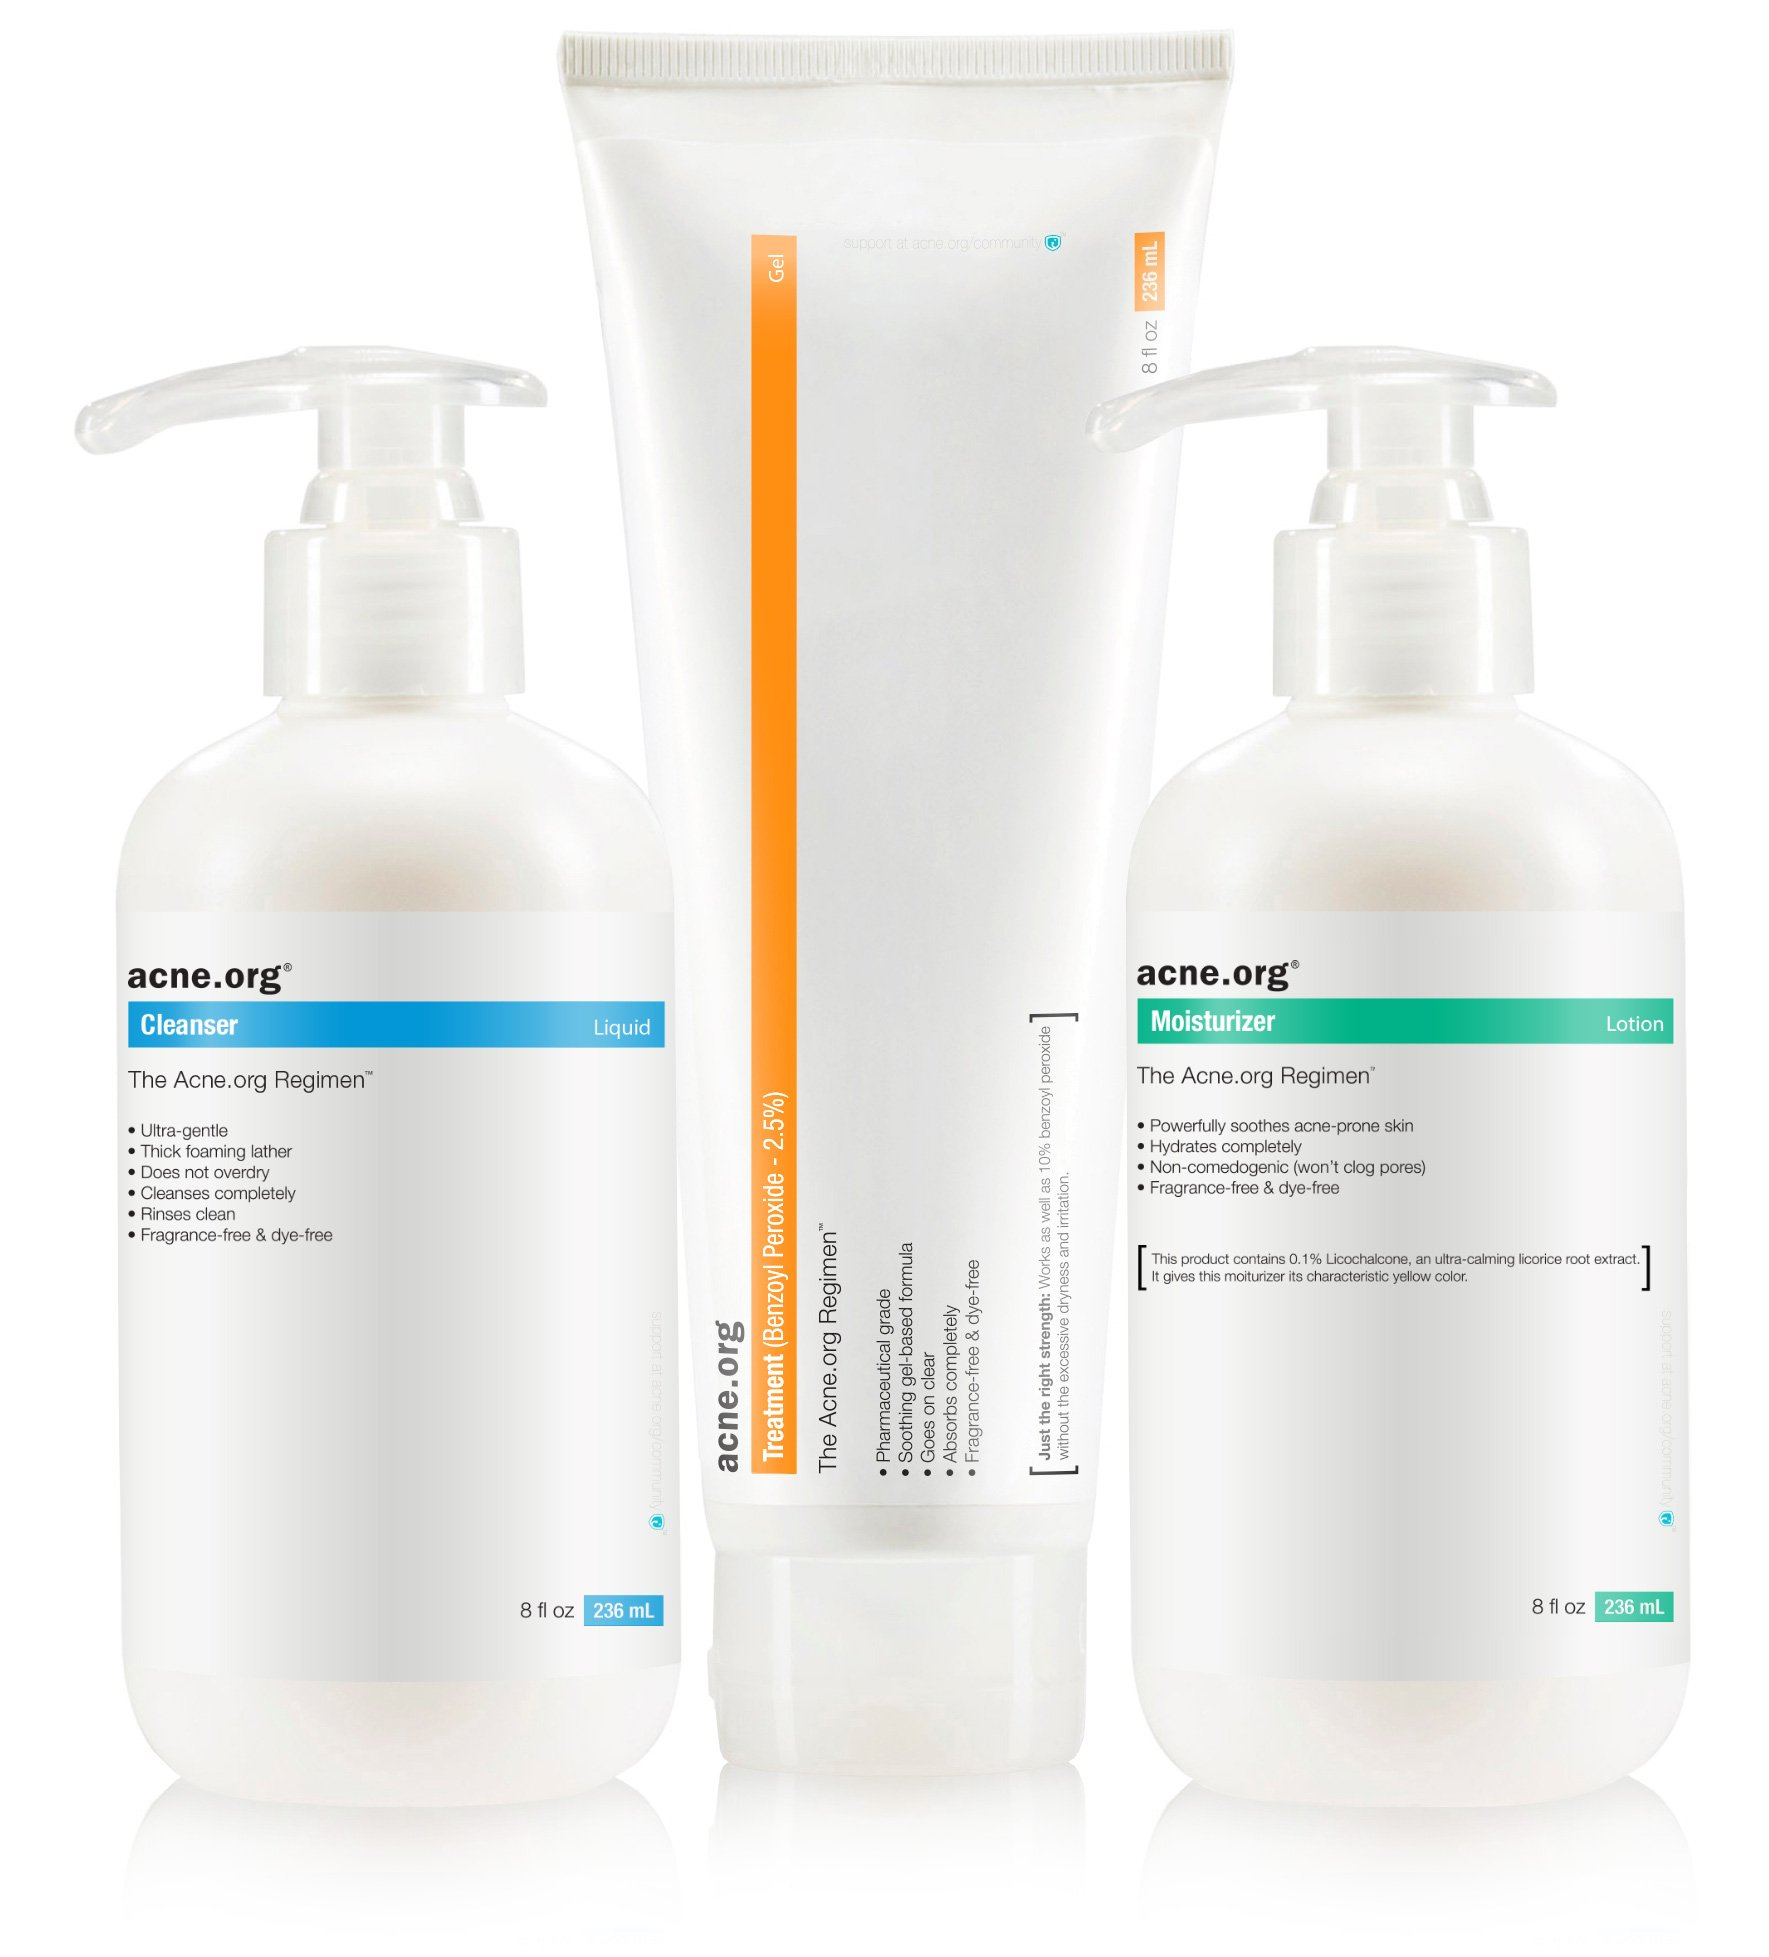 Basiron AC helps with acne Baziron AC: analogue cheaper and reviews